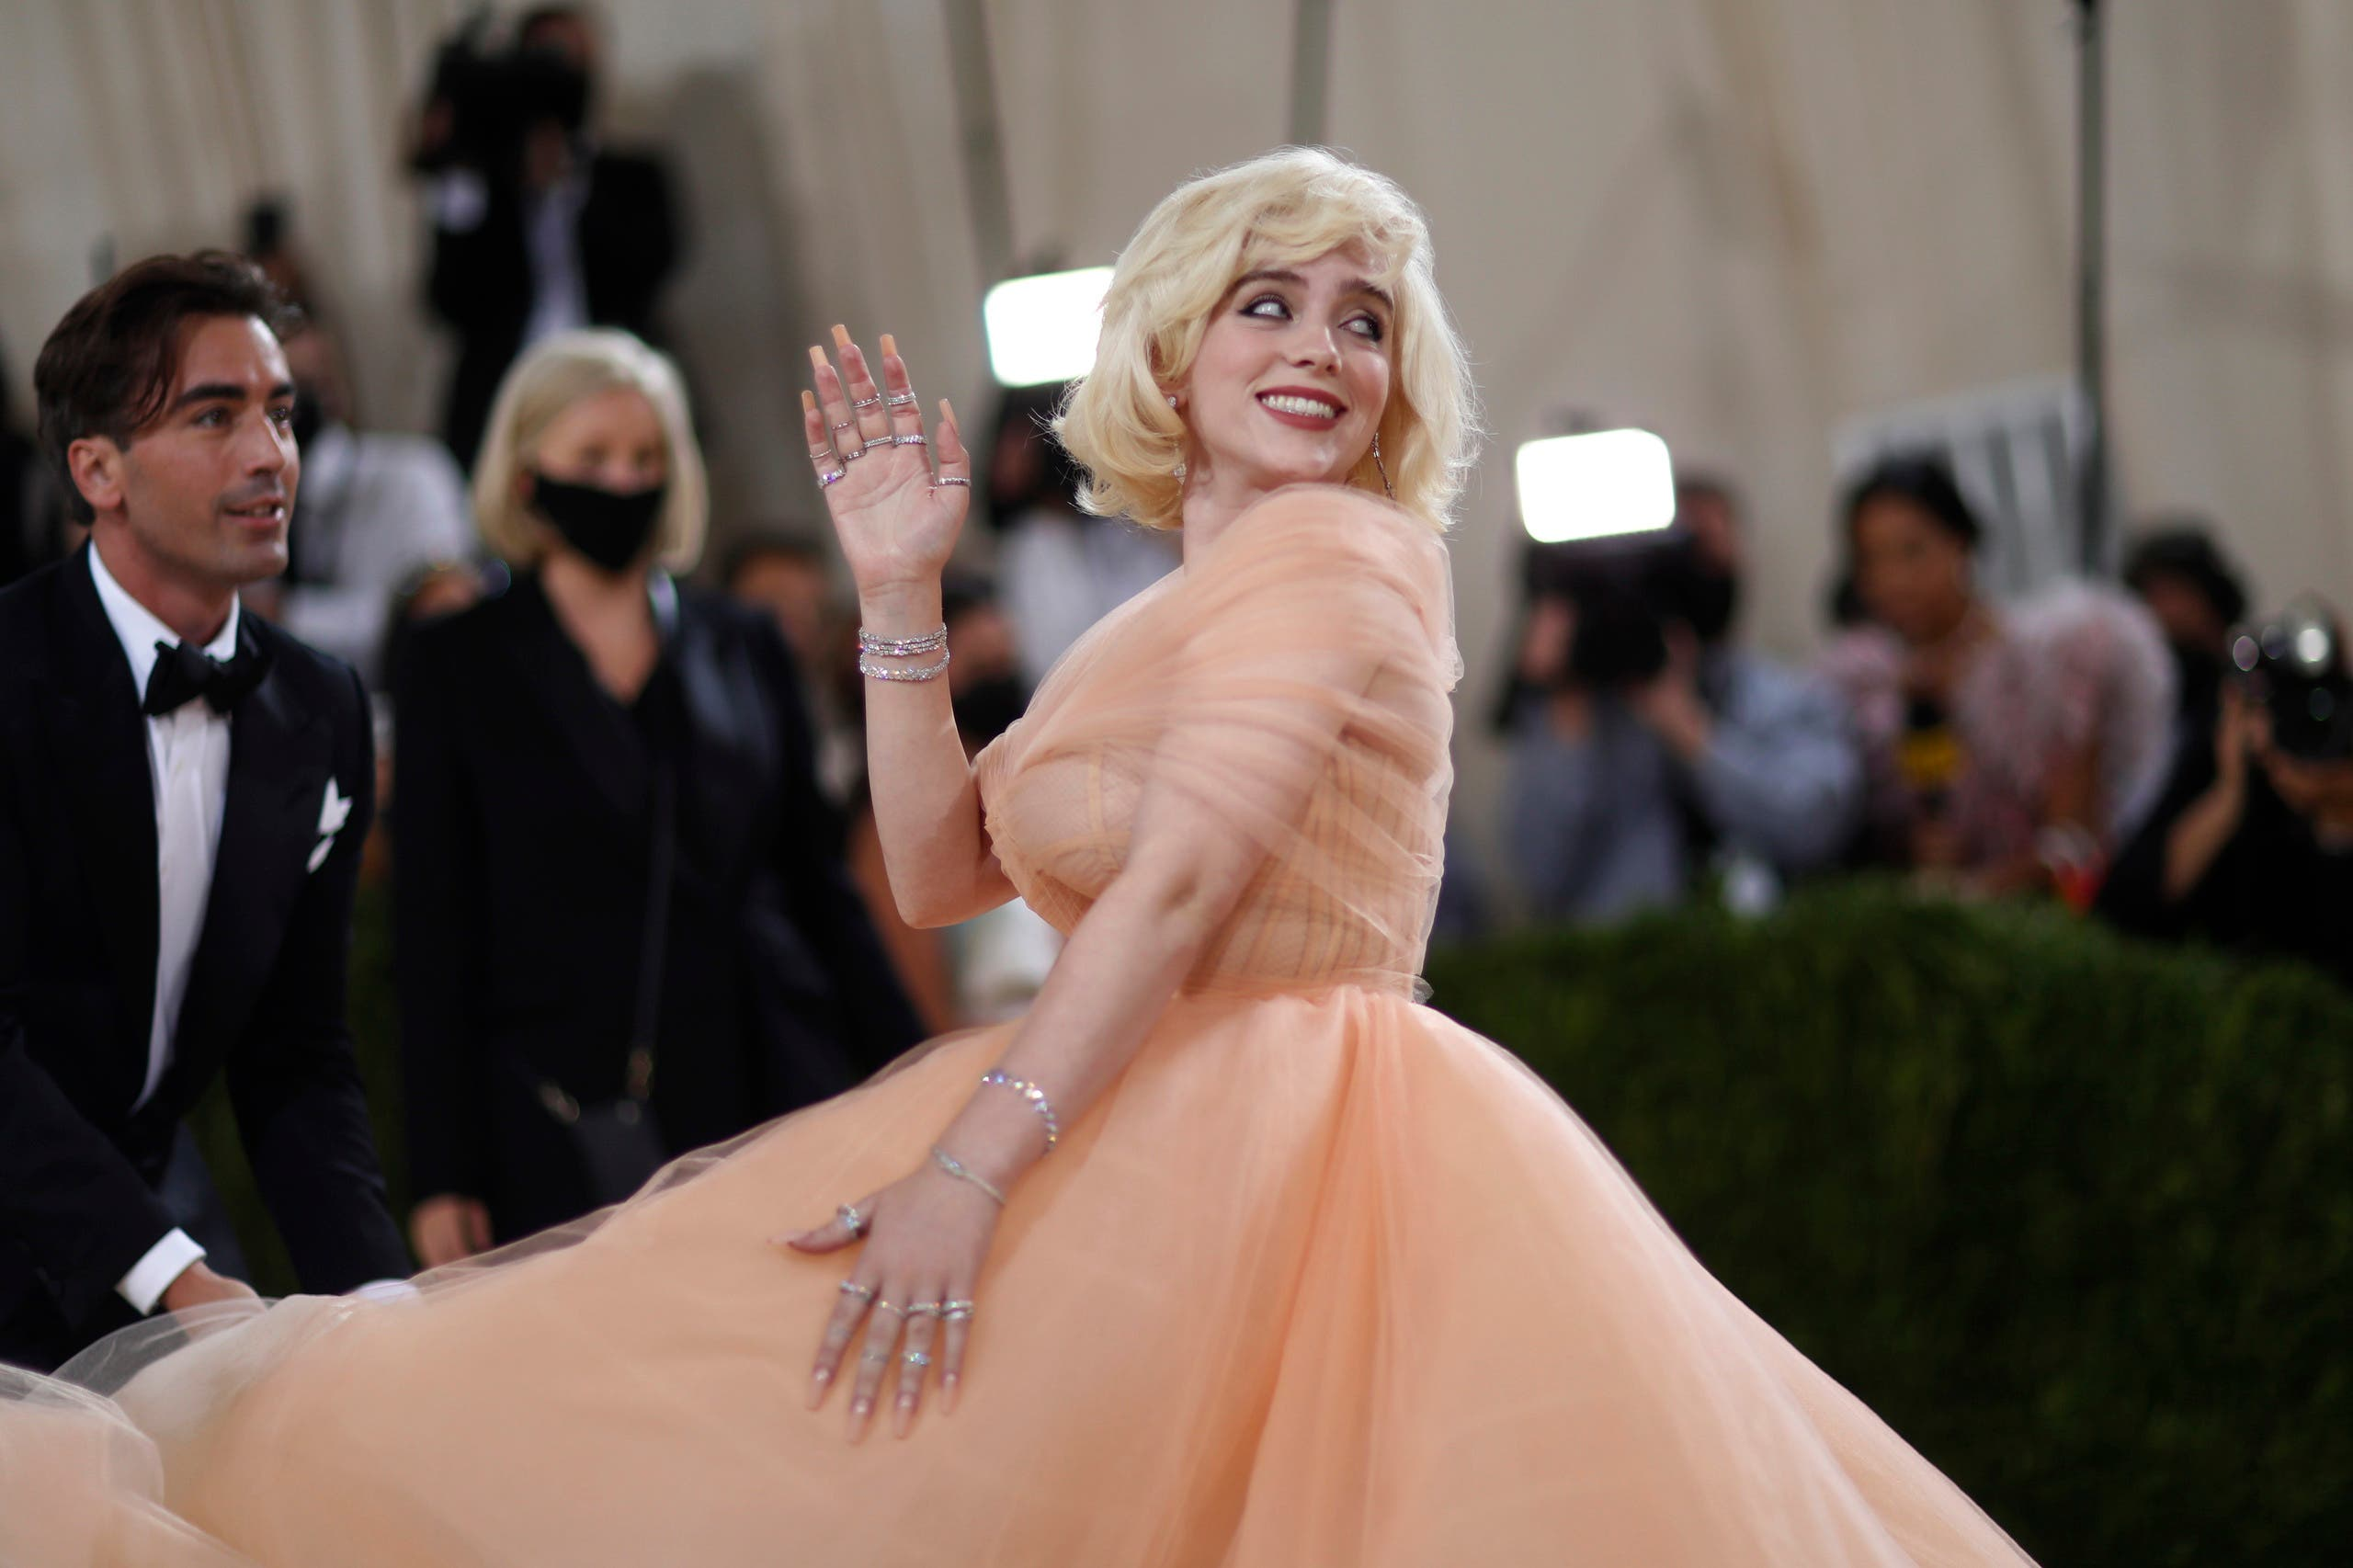 Metropolitan Museum of Art Costume Institute Gala - Met Gala - In America: A Lexicon of Fashion - Arrivals - New York City, US - September 13, 2021. Billie Eilish. (Reuters)